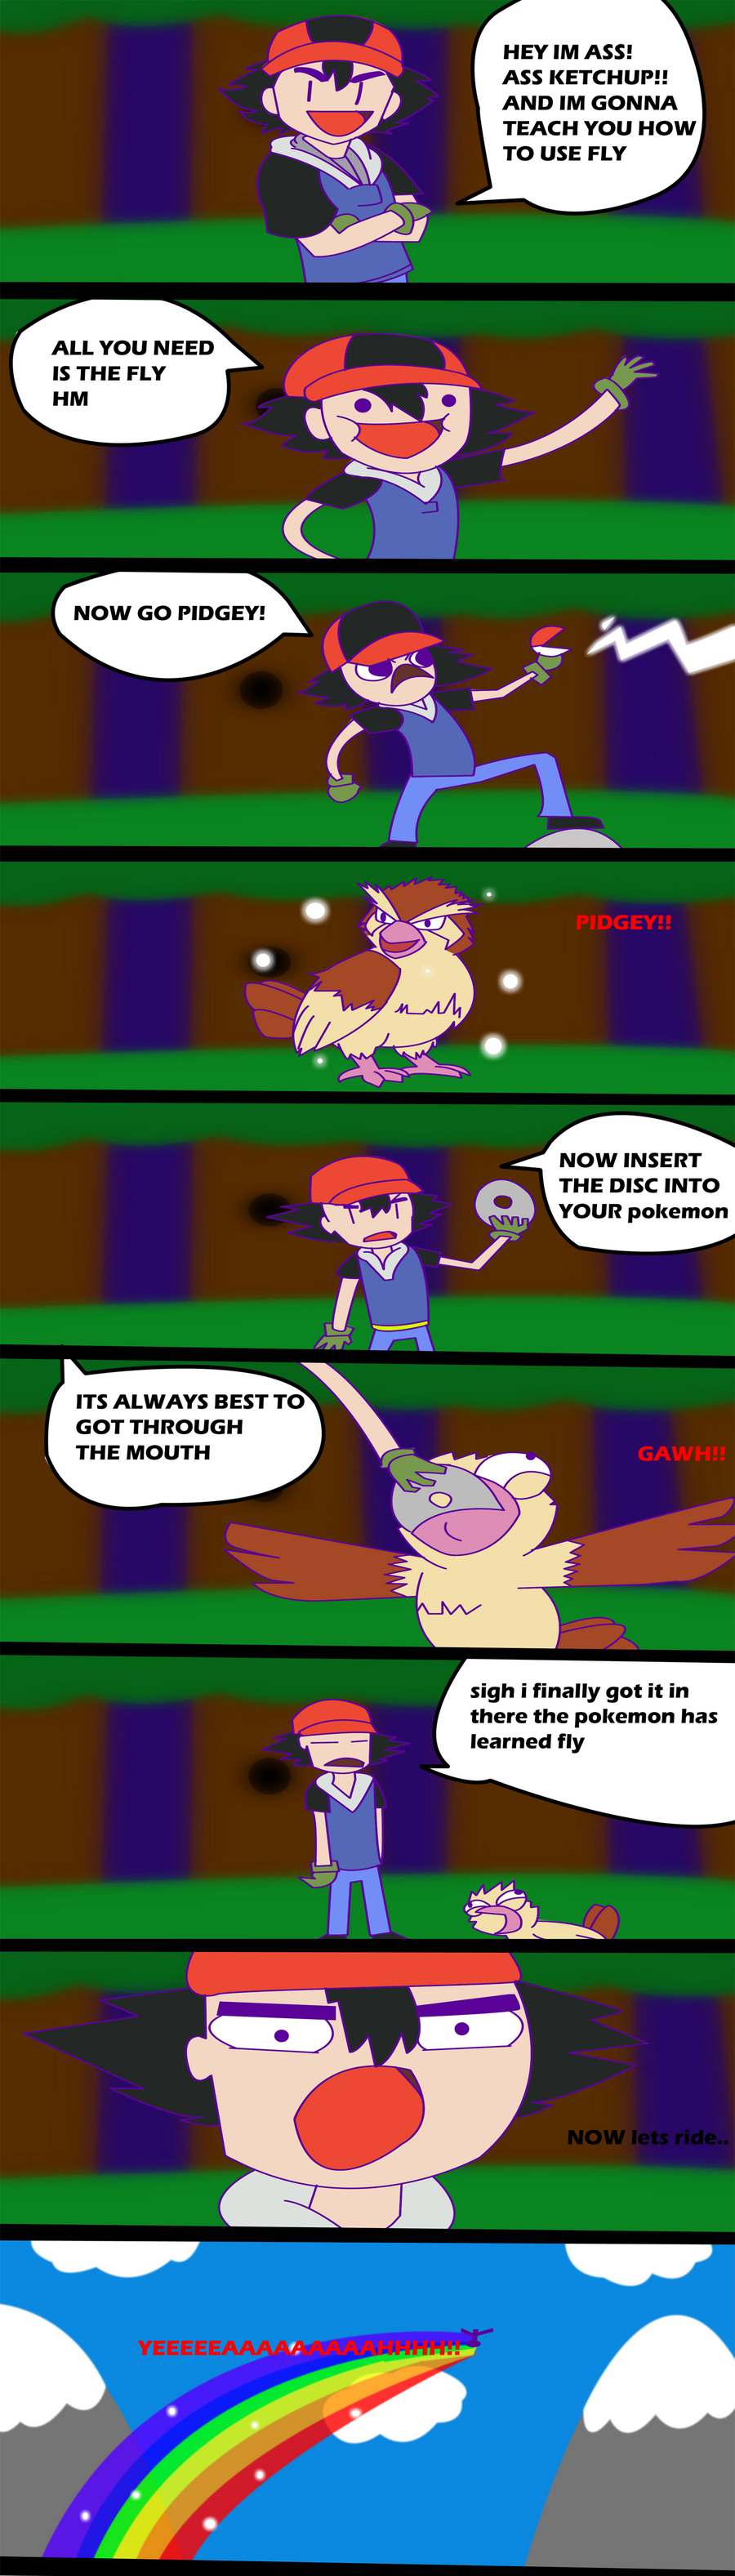 pokemon emerald how to fly